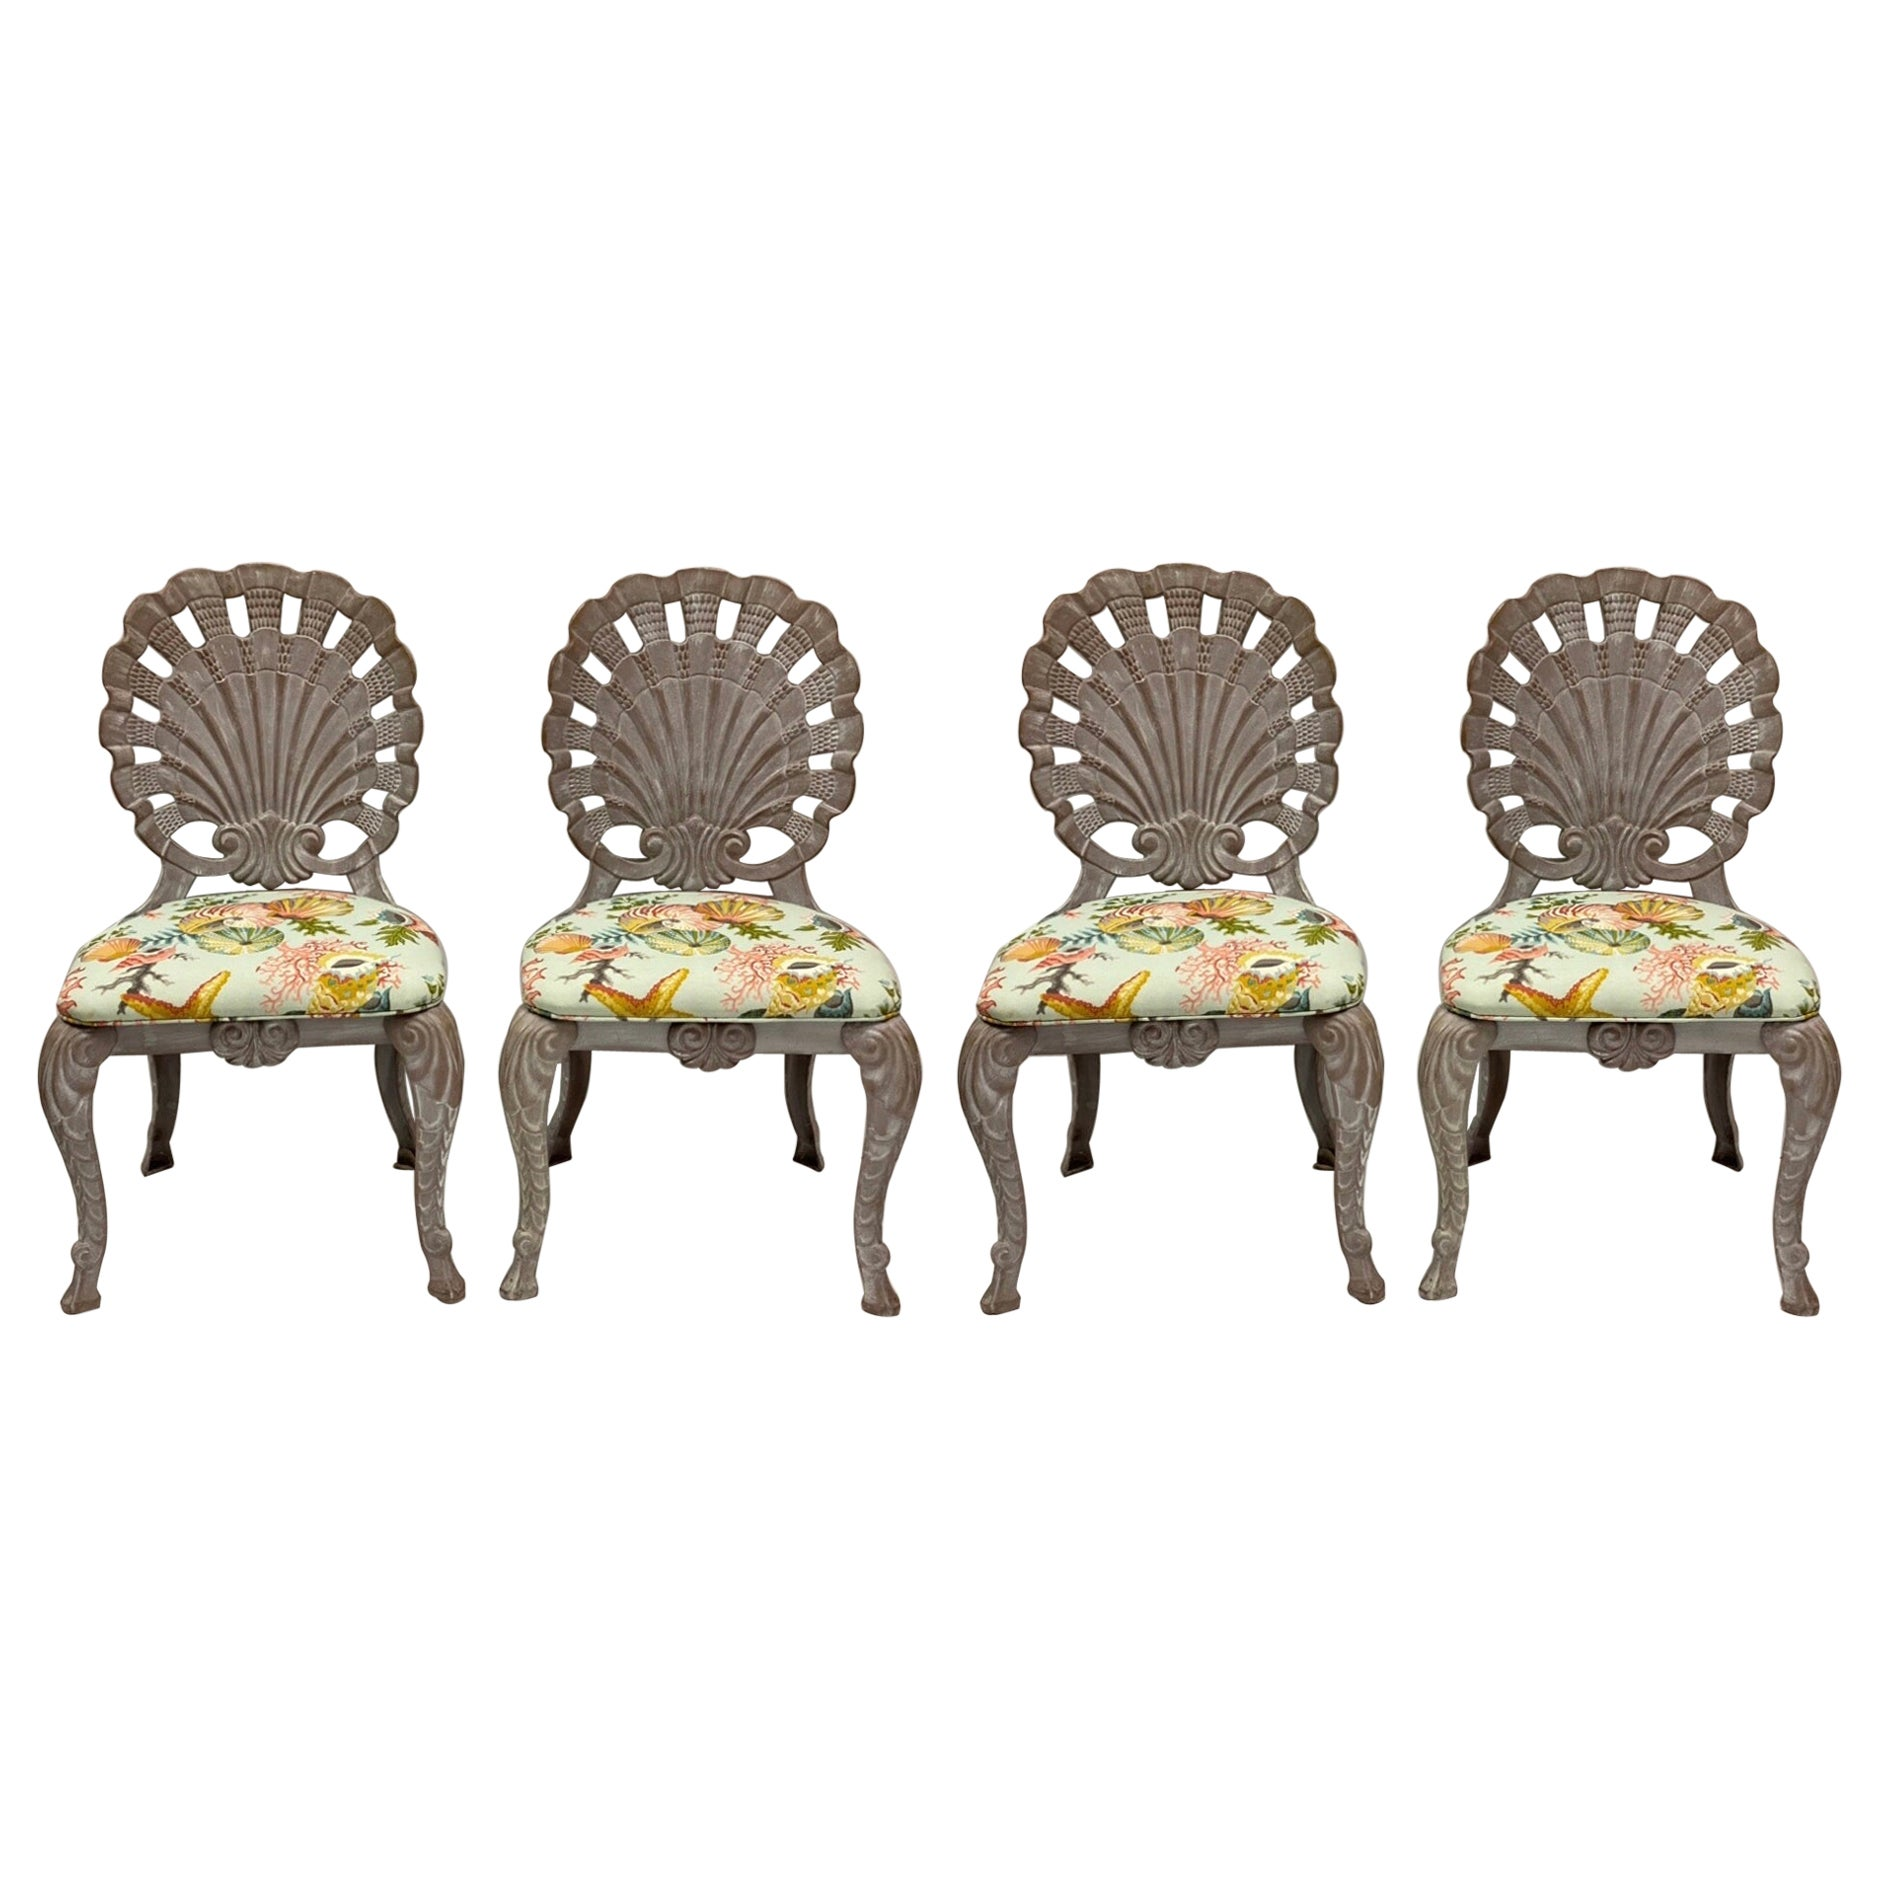 Brown Jordan Style Shell Form Grotto Inspired Outdoor Dining Chairs, Set of 4